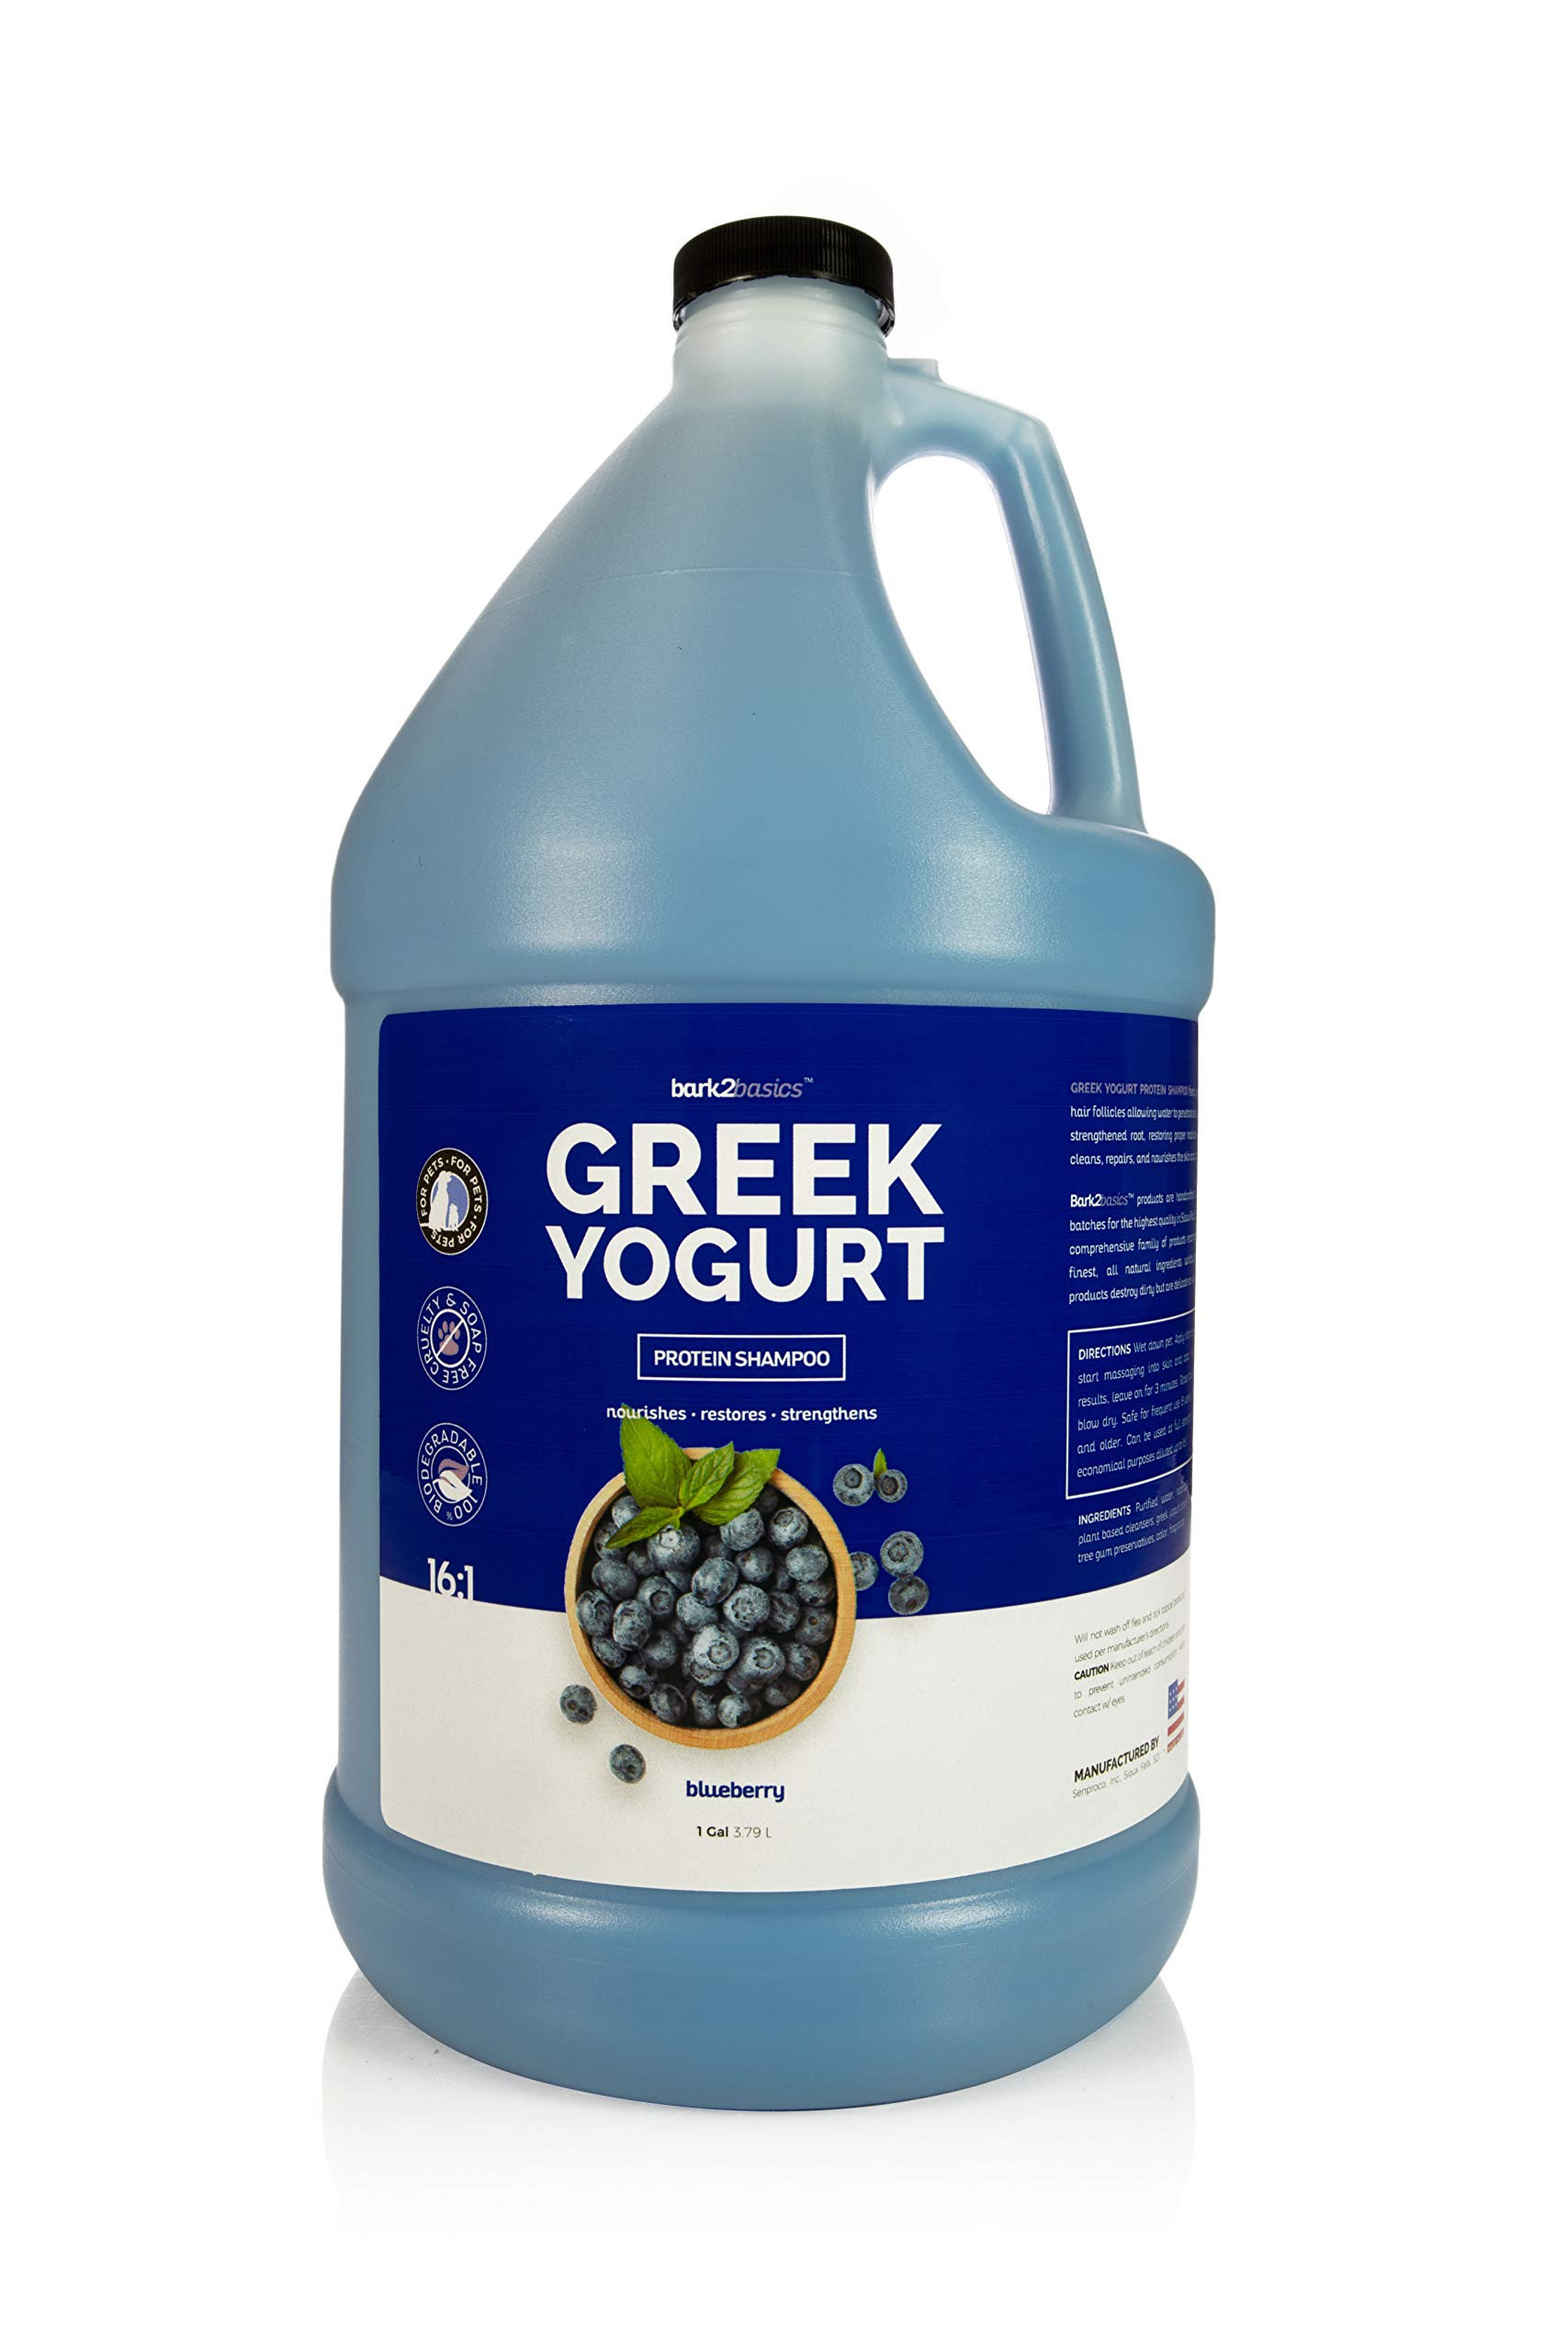 Bark 2 Basics Blueberry Greek Yogurt Shampoo, 1 Gallon